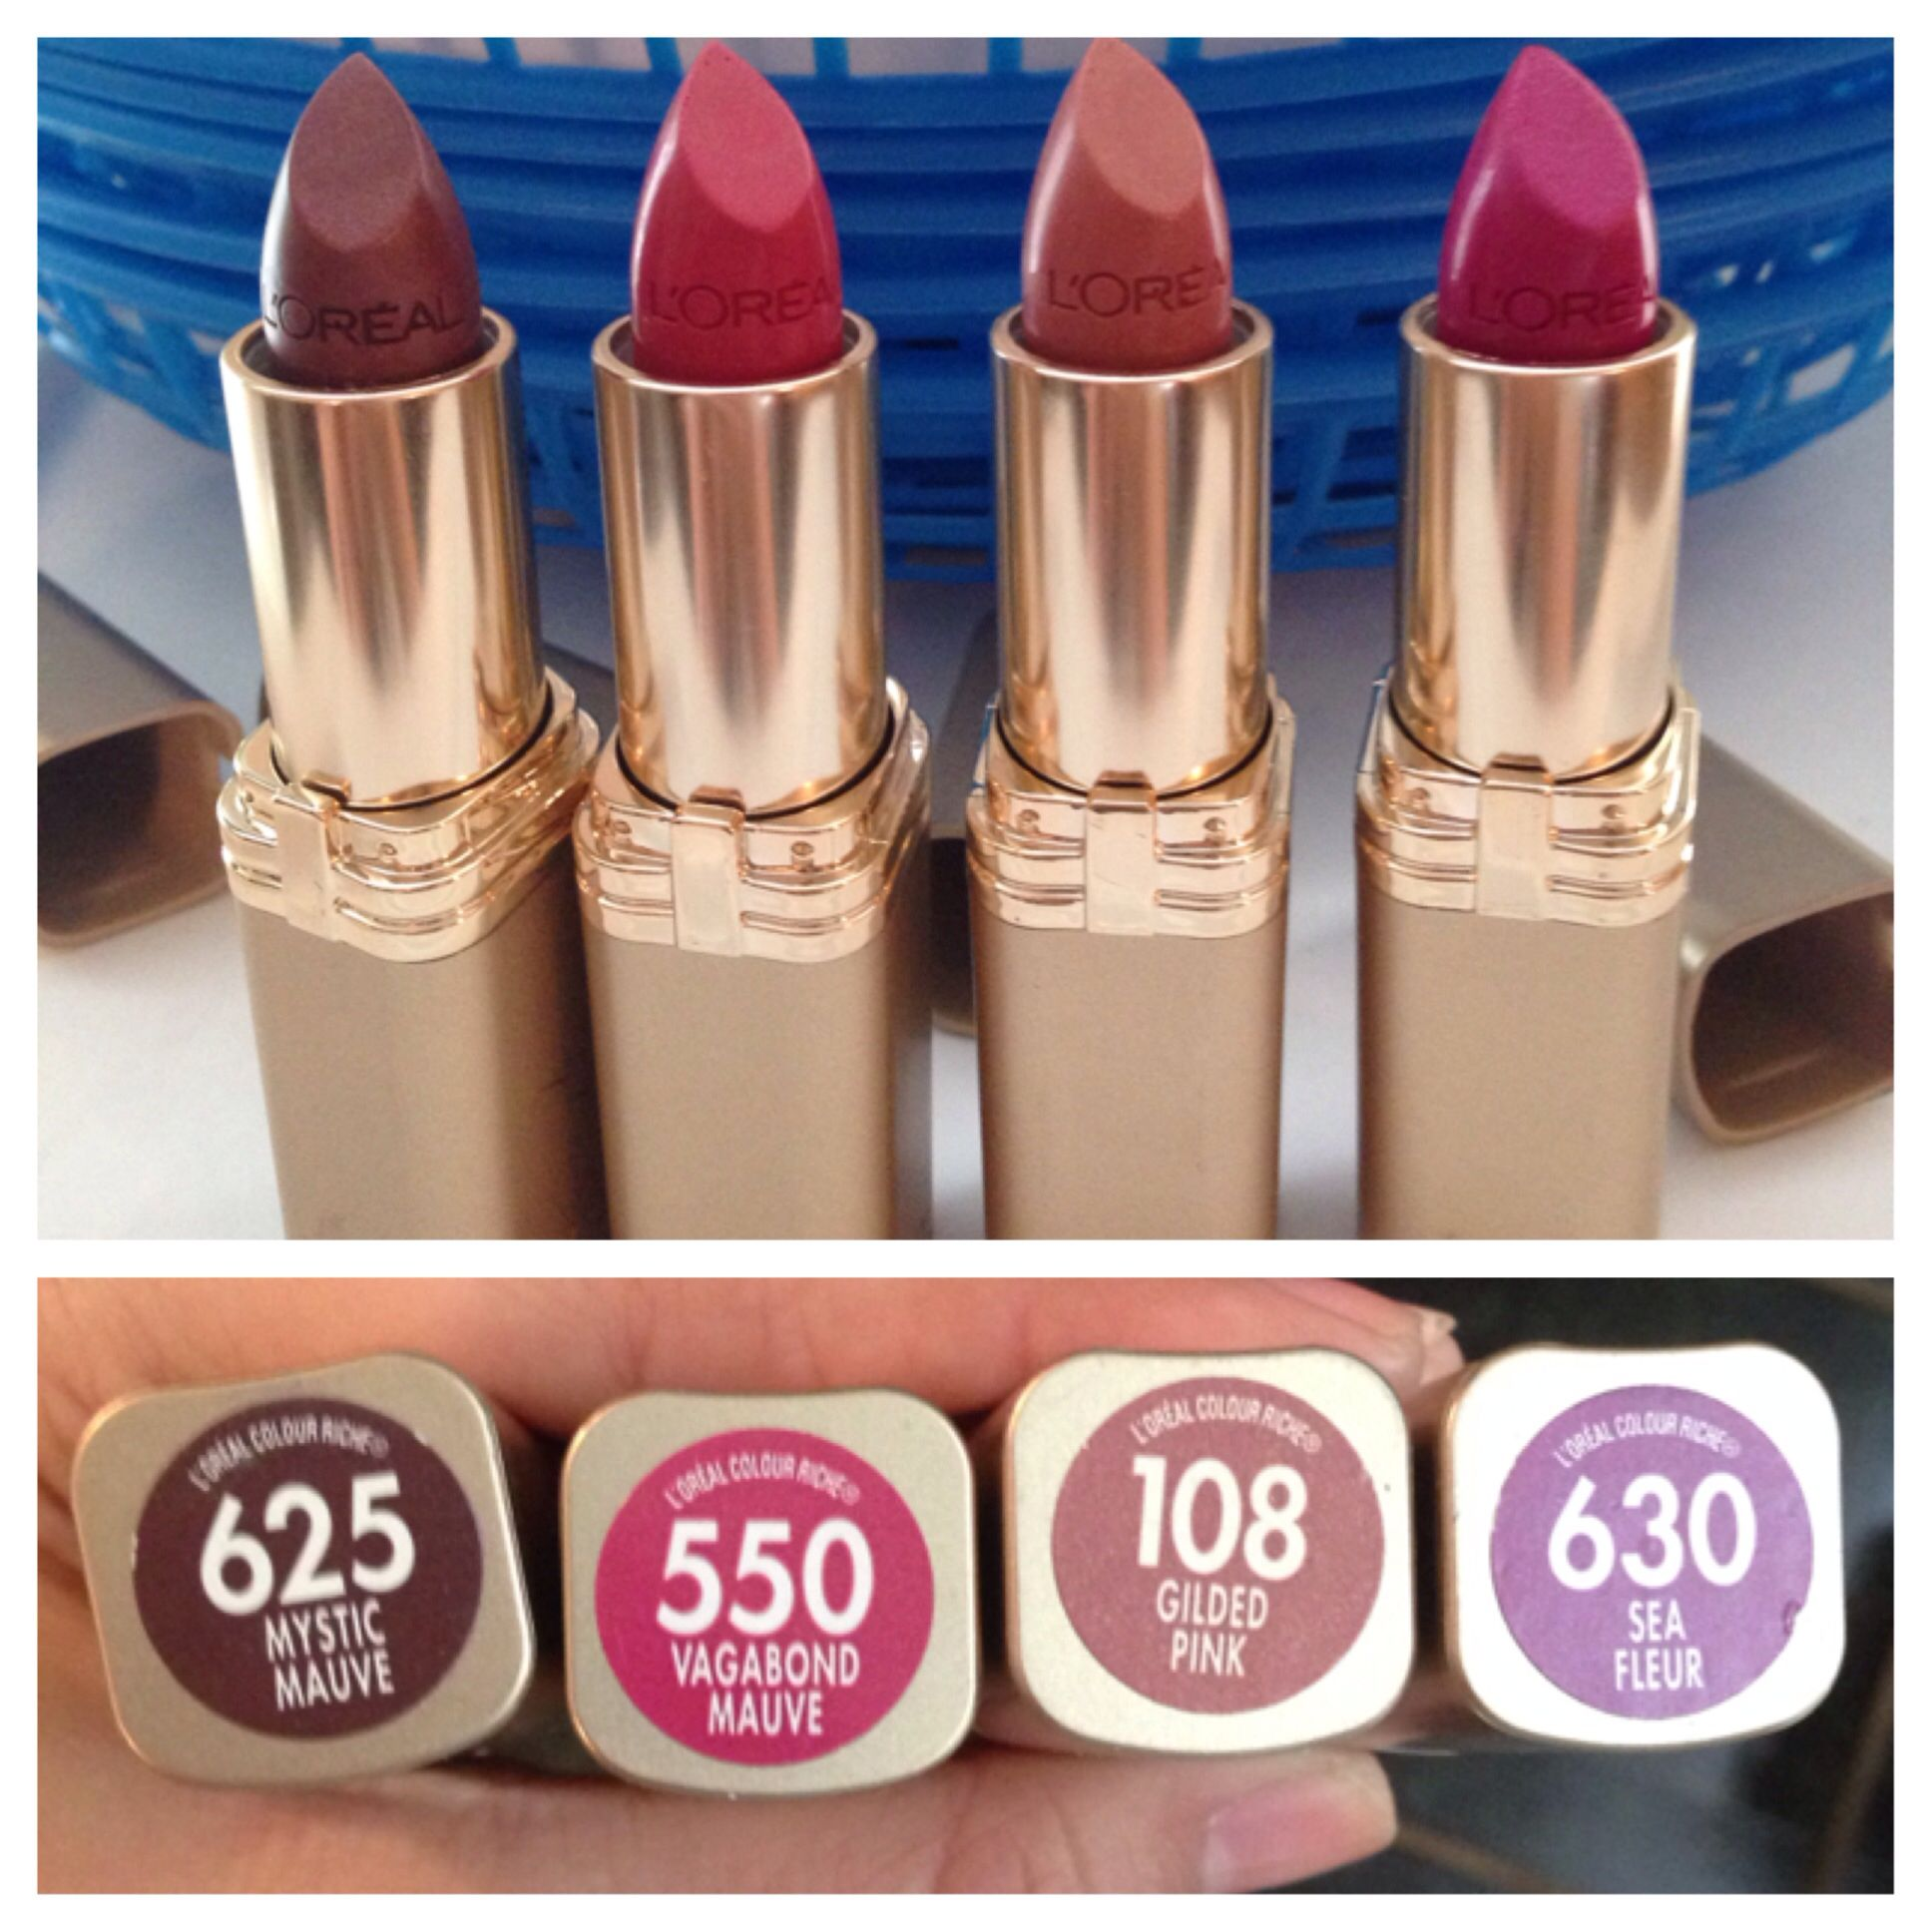 Loreal Lipsticks Shade Names Shown In Picture New Makeup Trade